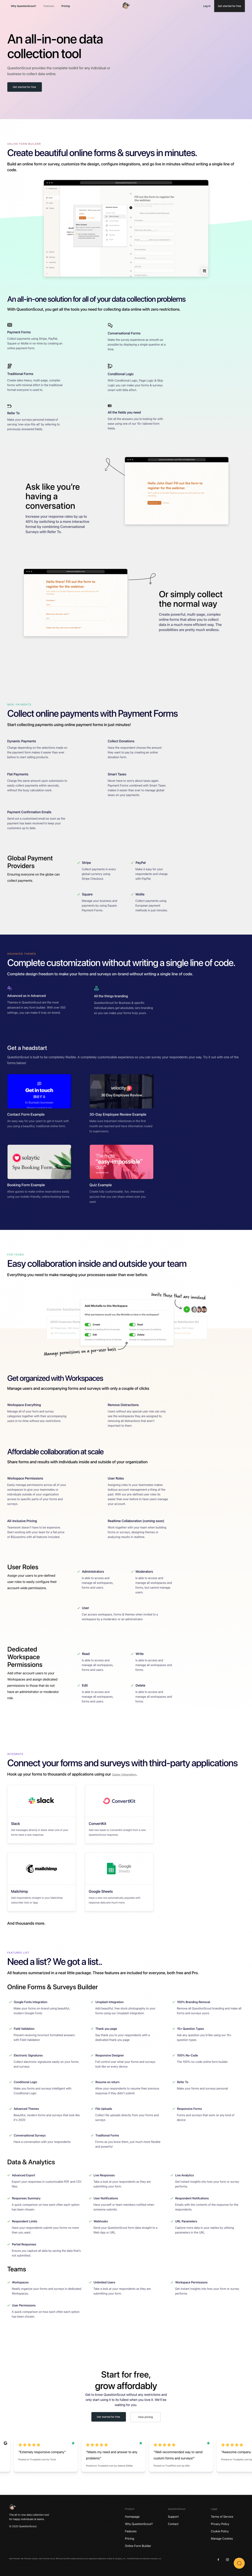 questionscout-features-page